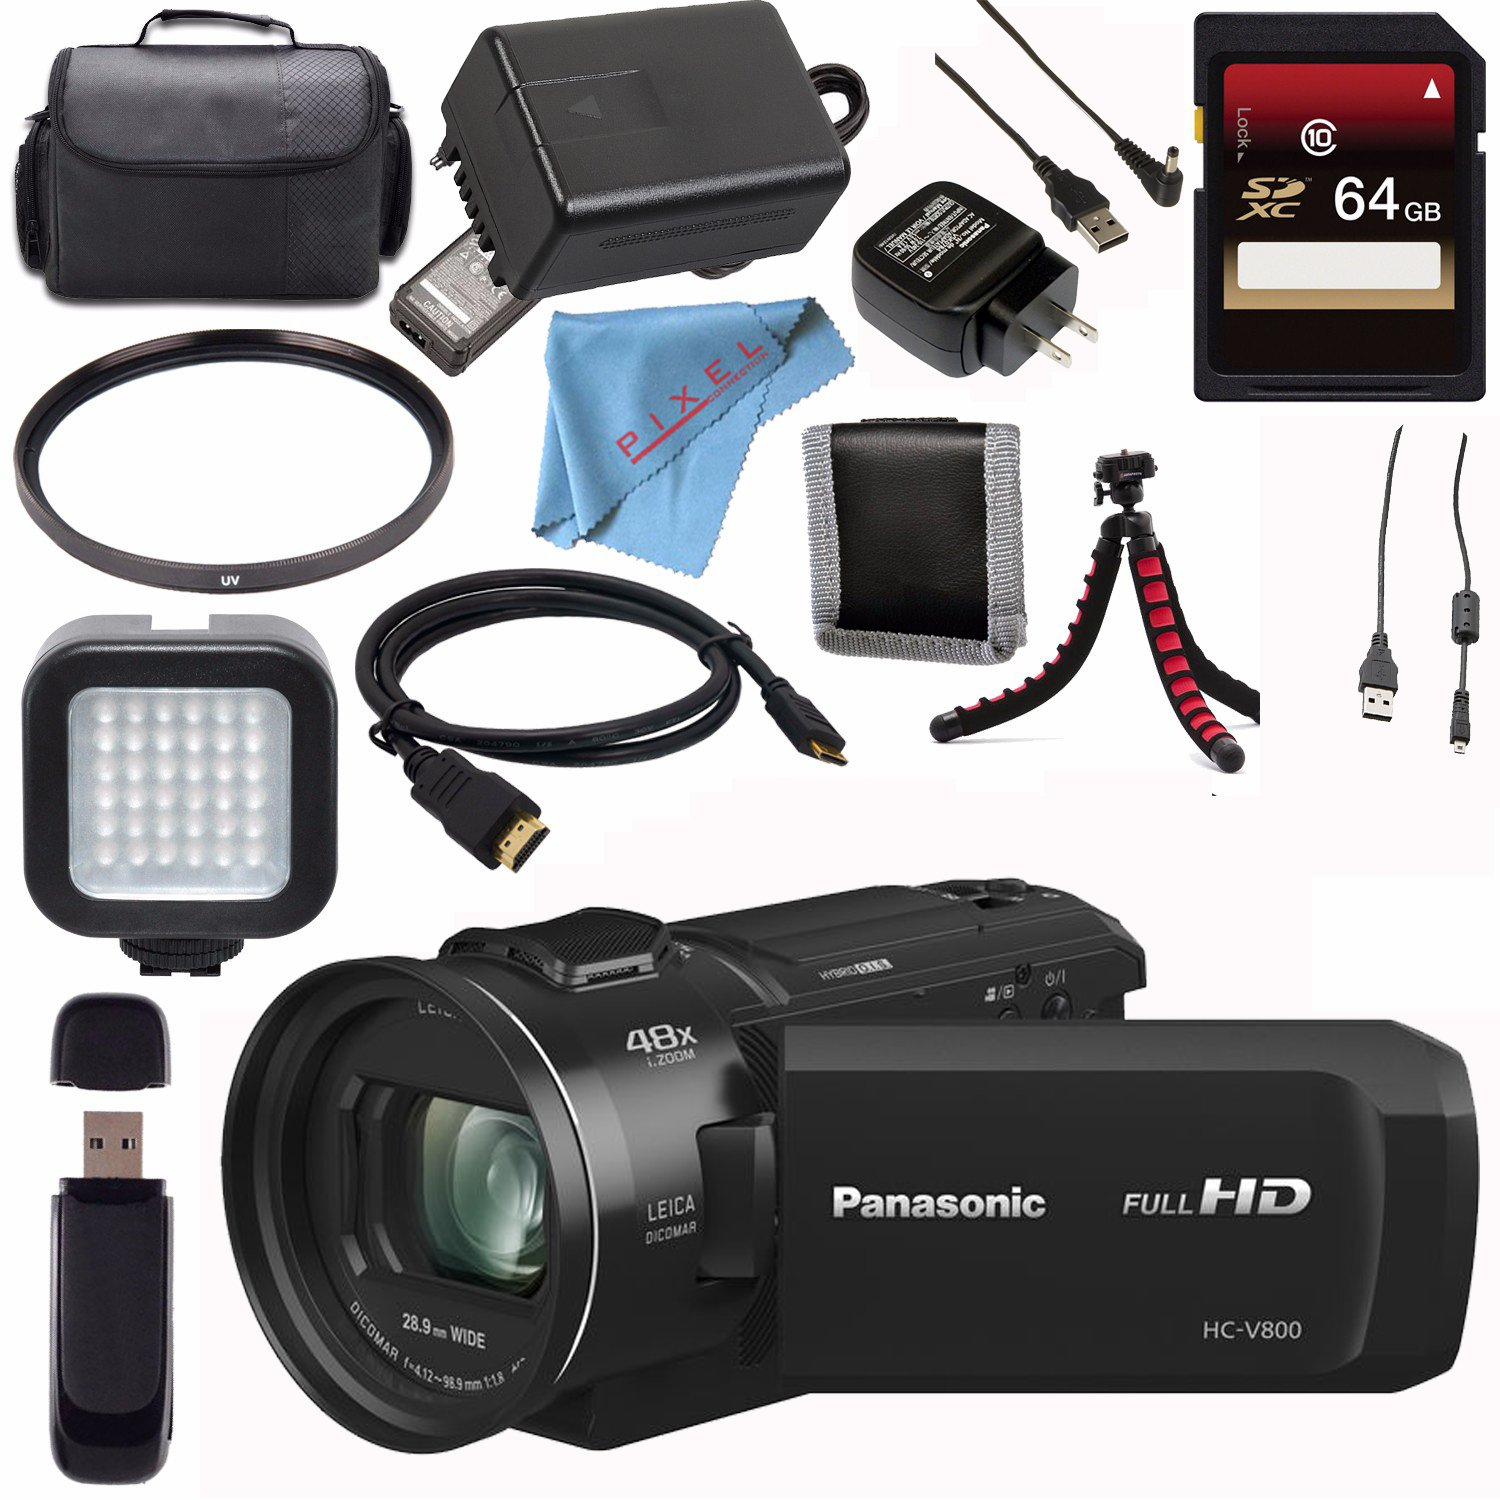 Panasonic HC-V800 HC-V800K Full HD Camcorder + 64GB SDXC Card + 62mm UV Filter + Carrying Case + Flexible Tripod + Micro HDMI Cable + LED Light Bundle by Panasonic